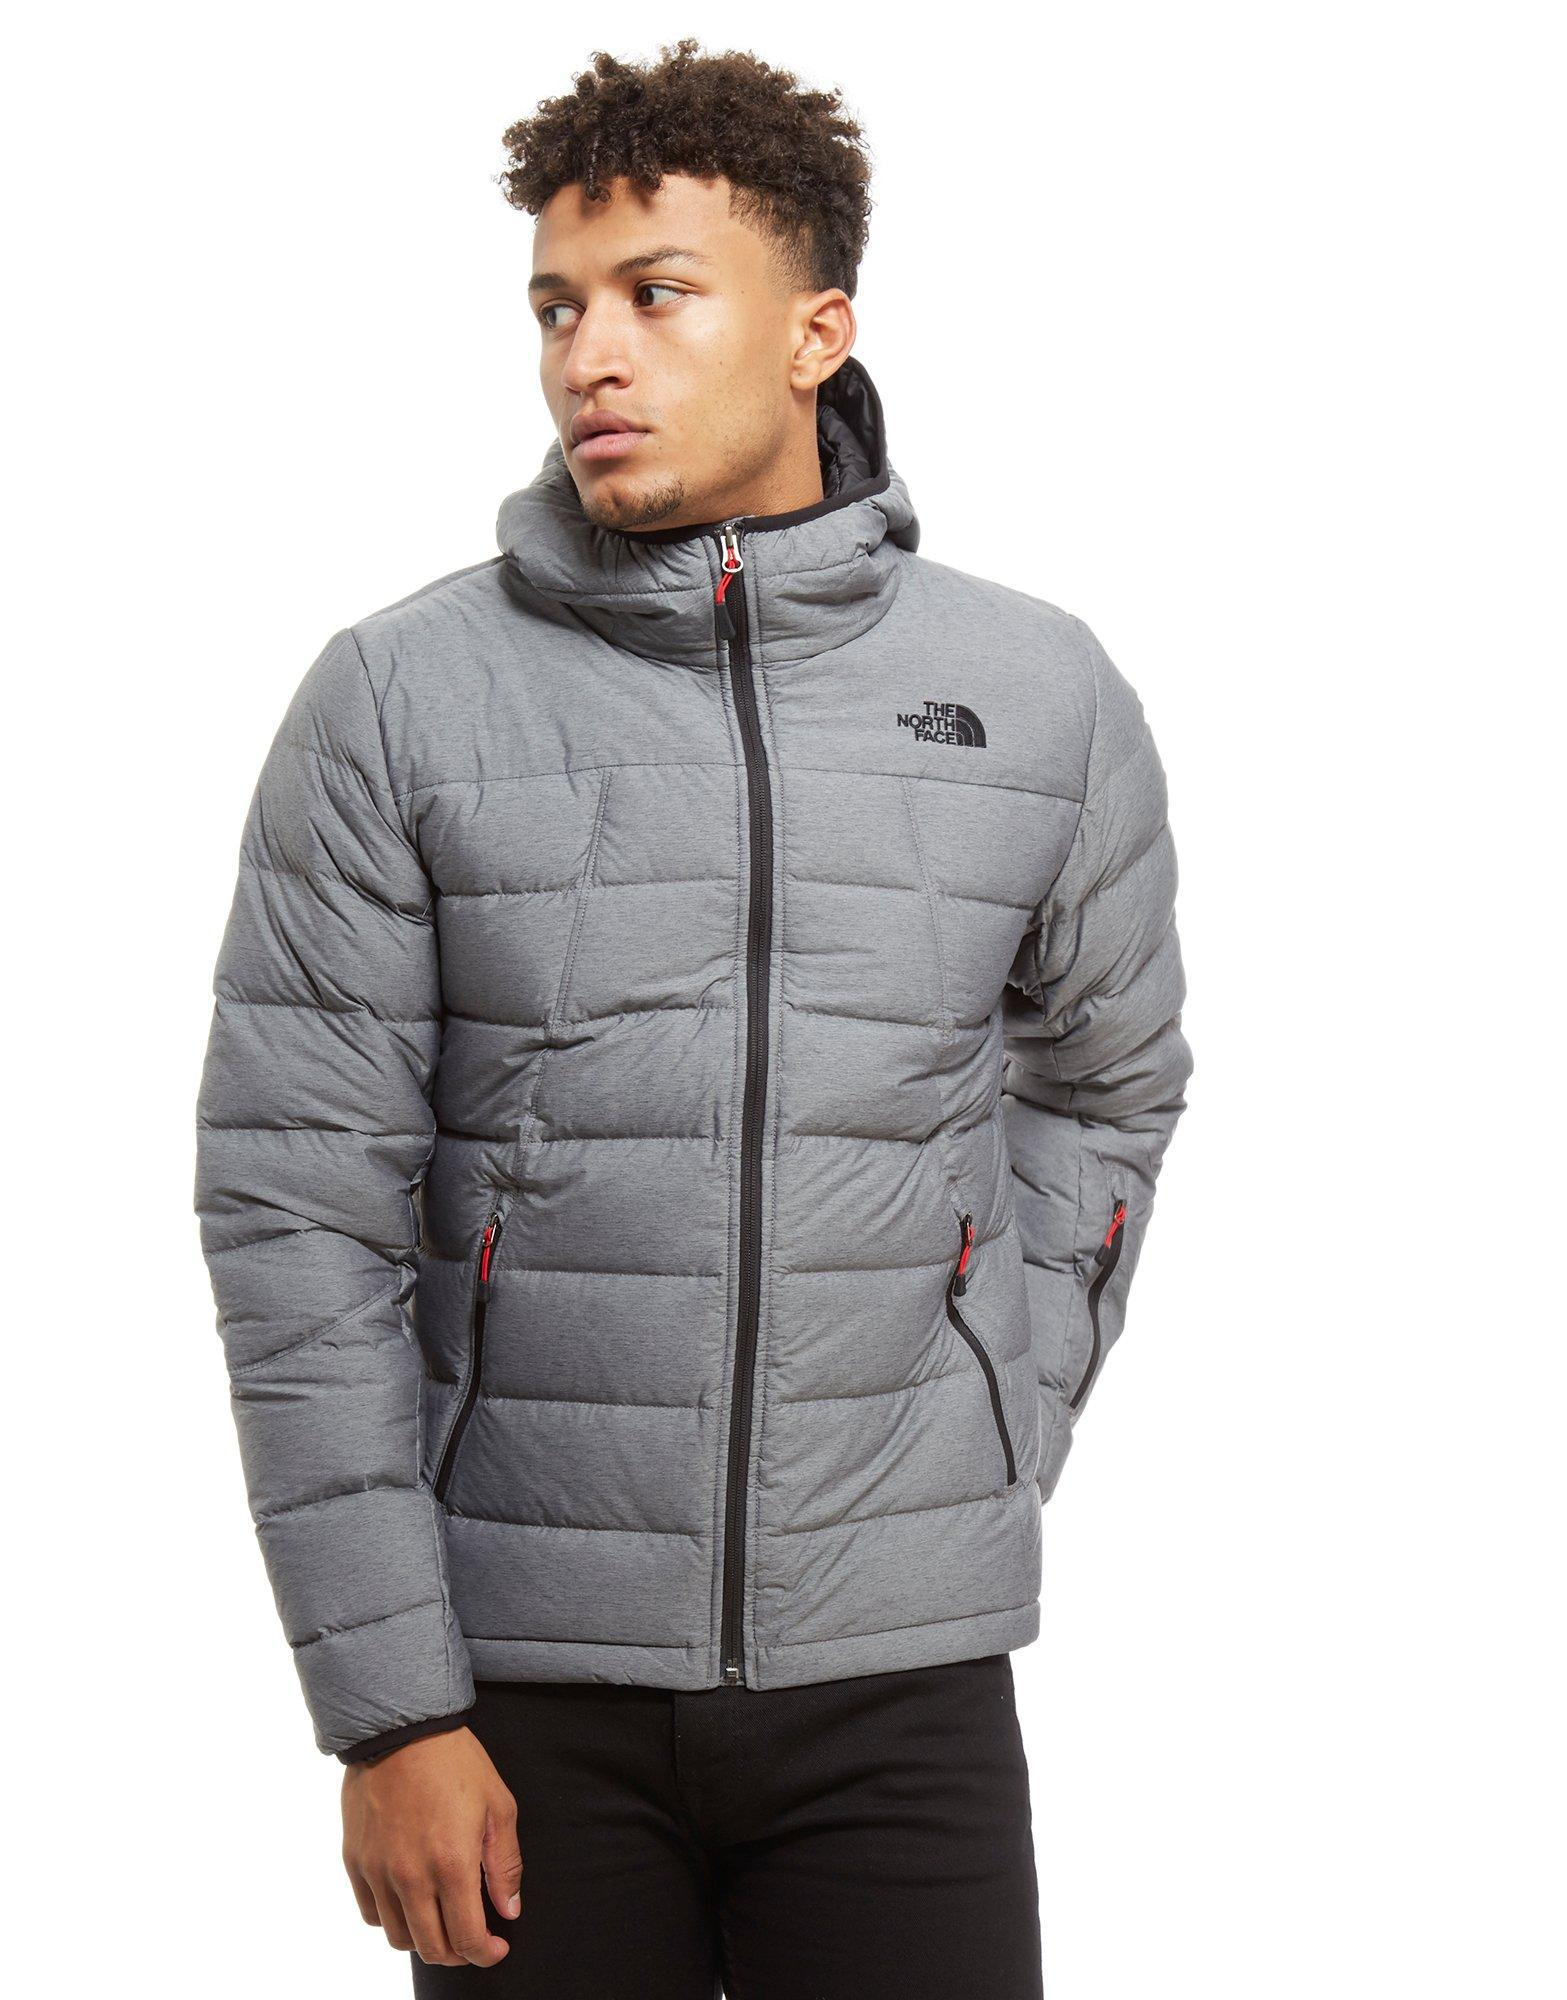 The North Face Quilted Puffer Jacket Outfit